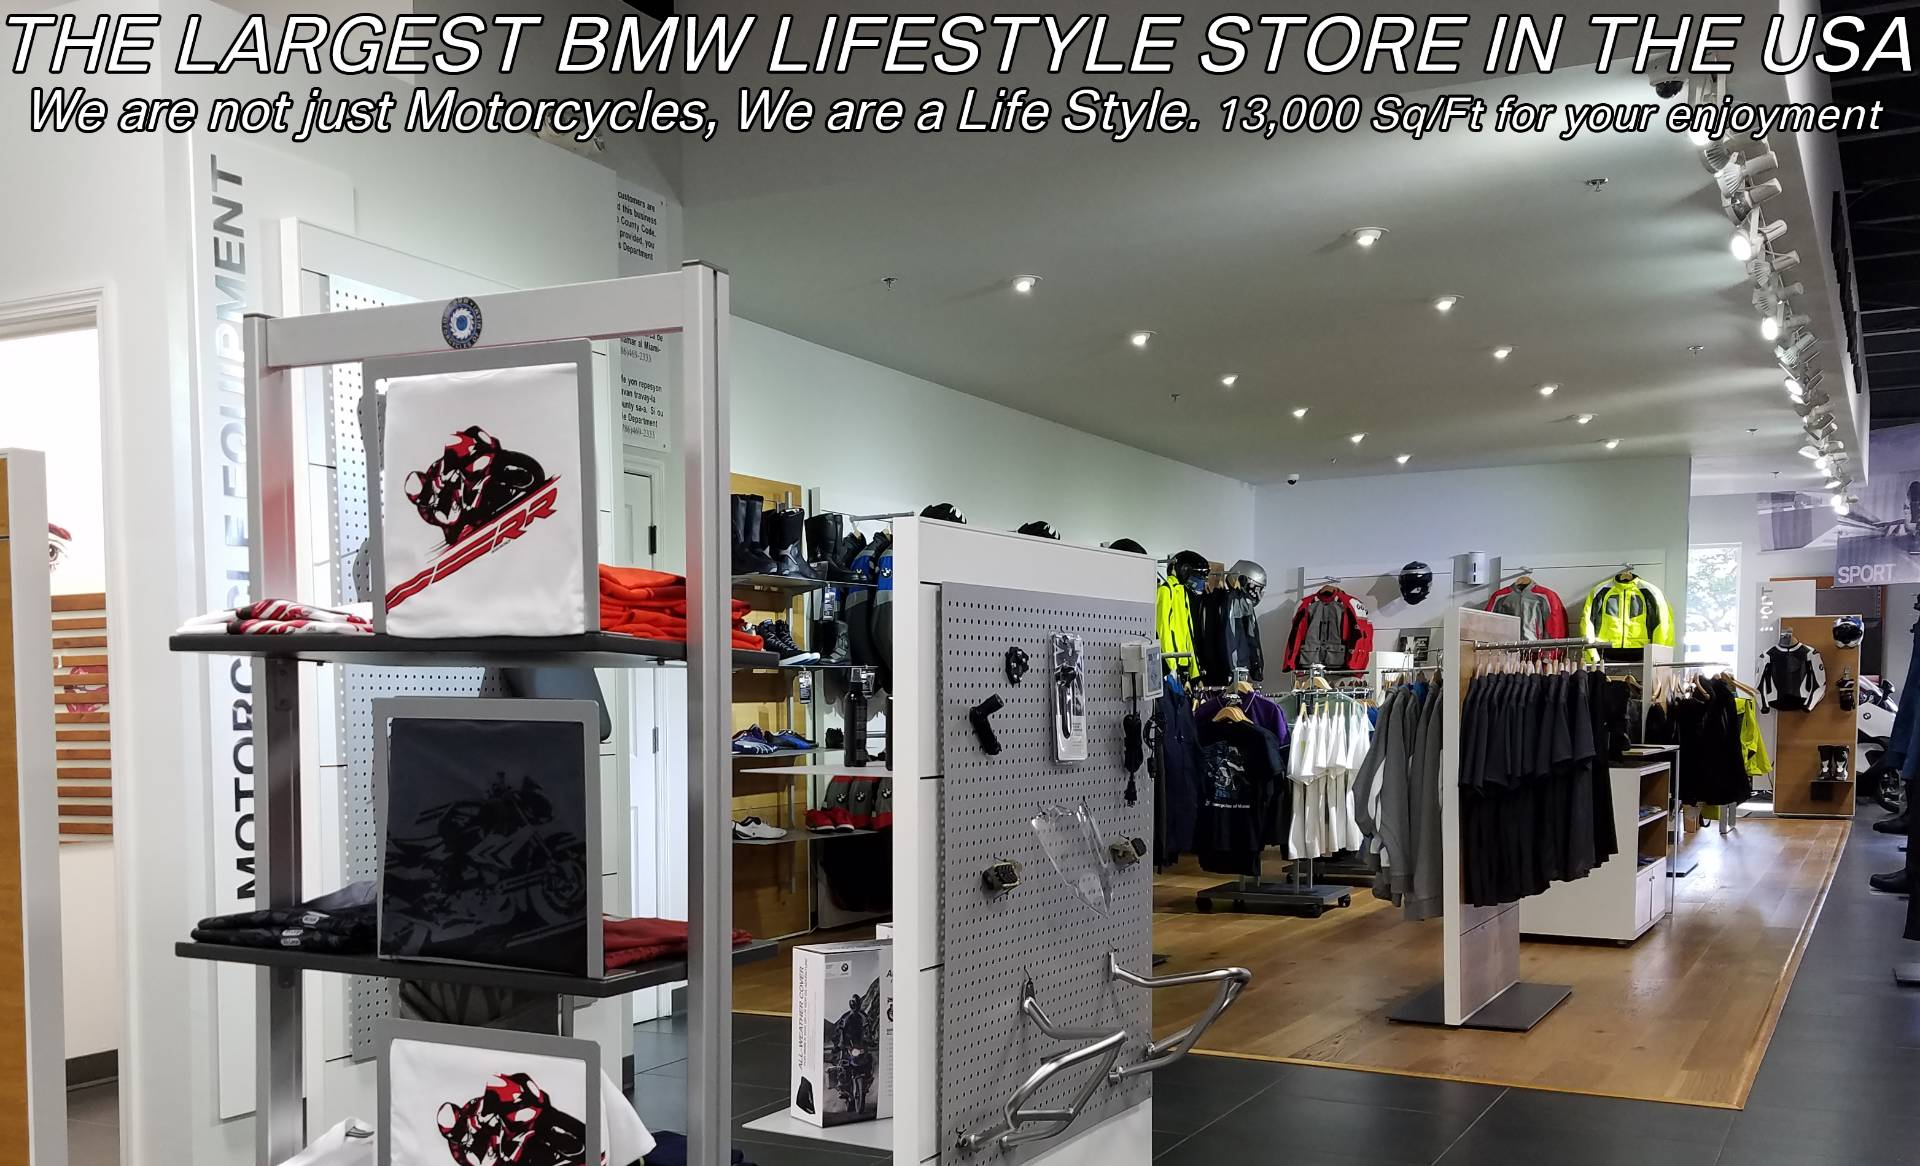 New 2019 BMW R 1250 GS for sale, New BMW for sale R 1250GS, New BMW Motorcycle R1250GS for sale, new BMW 1250GS, R1250GS, GS. BMW Motorcycles of Miami, Motorcycles of Miami, Motorcycles Miami, New Motorcycles, Used Motorcycles, pre-owned. #BMWMotorcyclesOfMiami #MotorcyclesOfMiami. - Photo 54